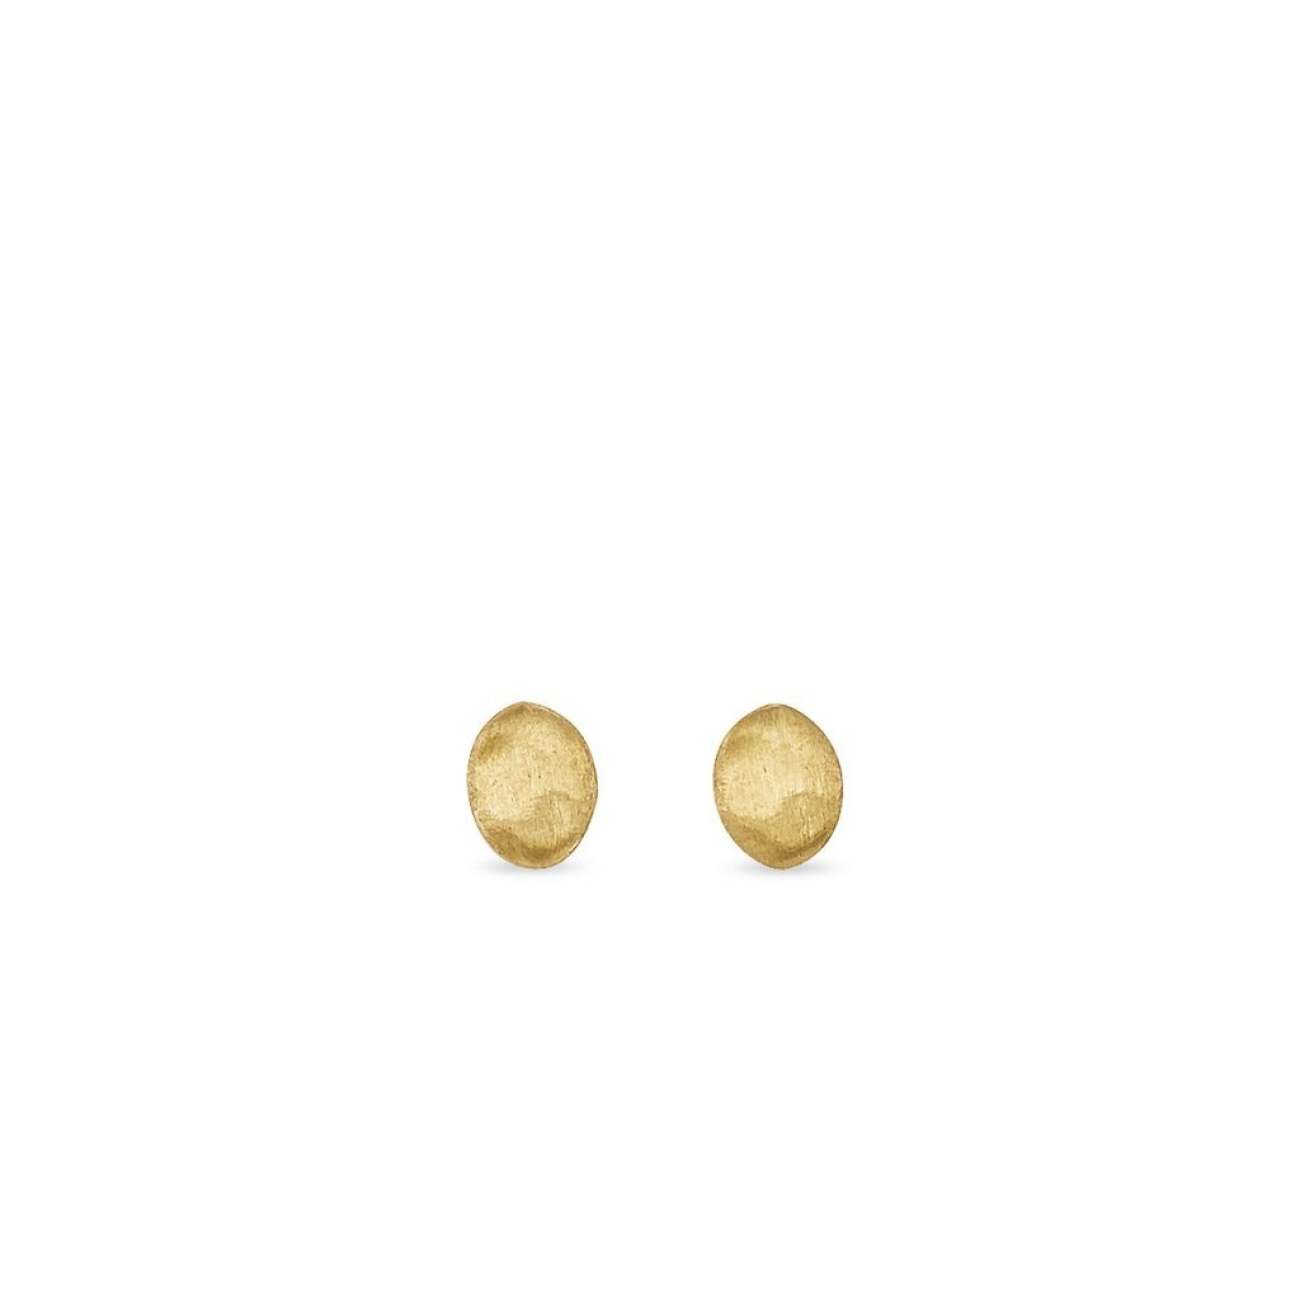 Marco Bicego Jewelry - 18K Yellow Gold Stud Earrings | Manfredi Jewels